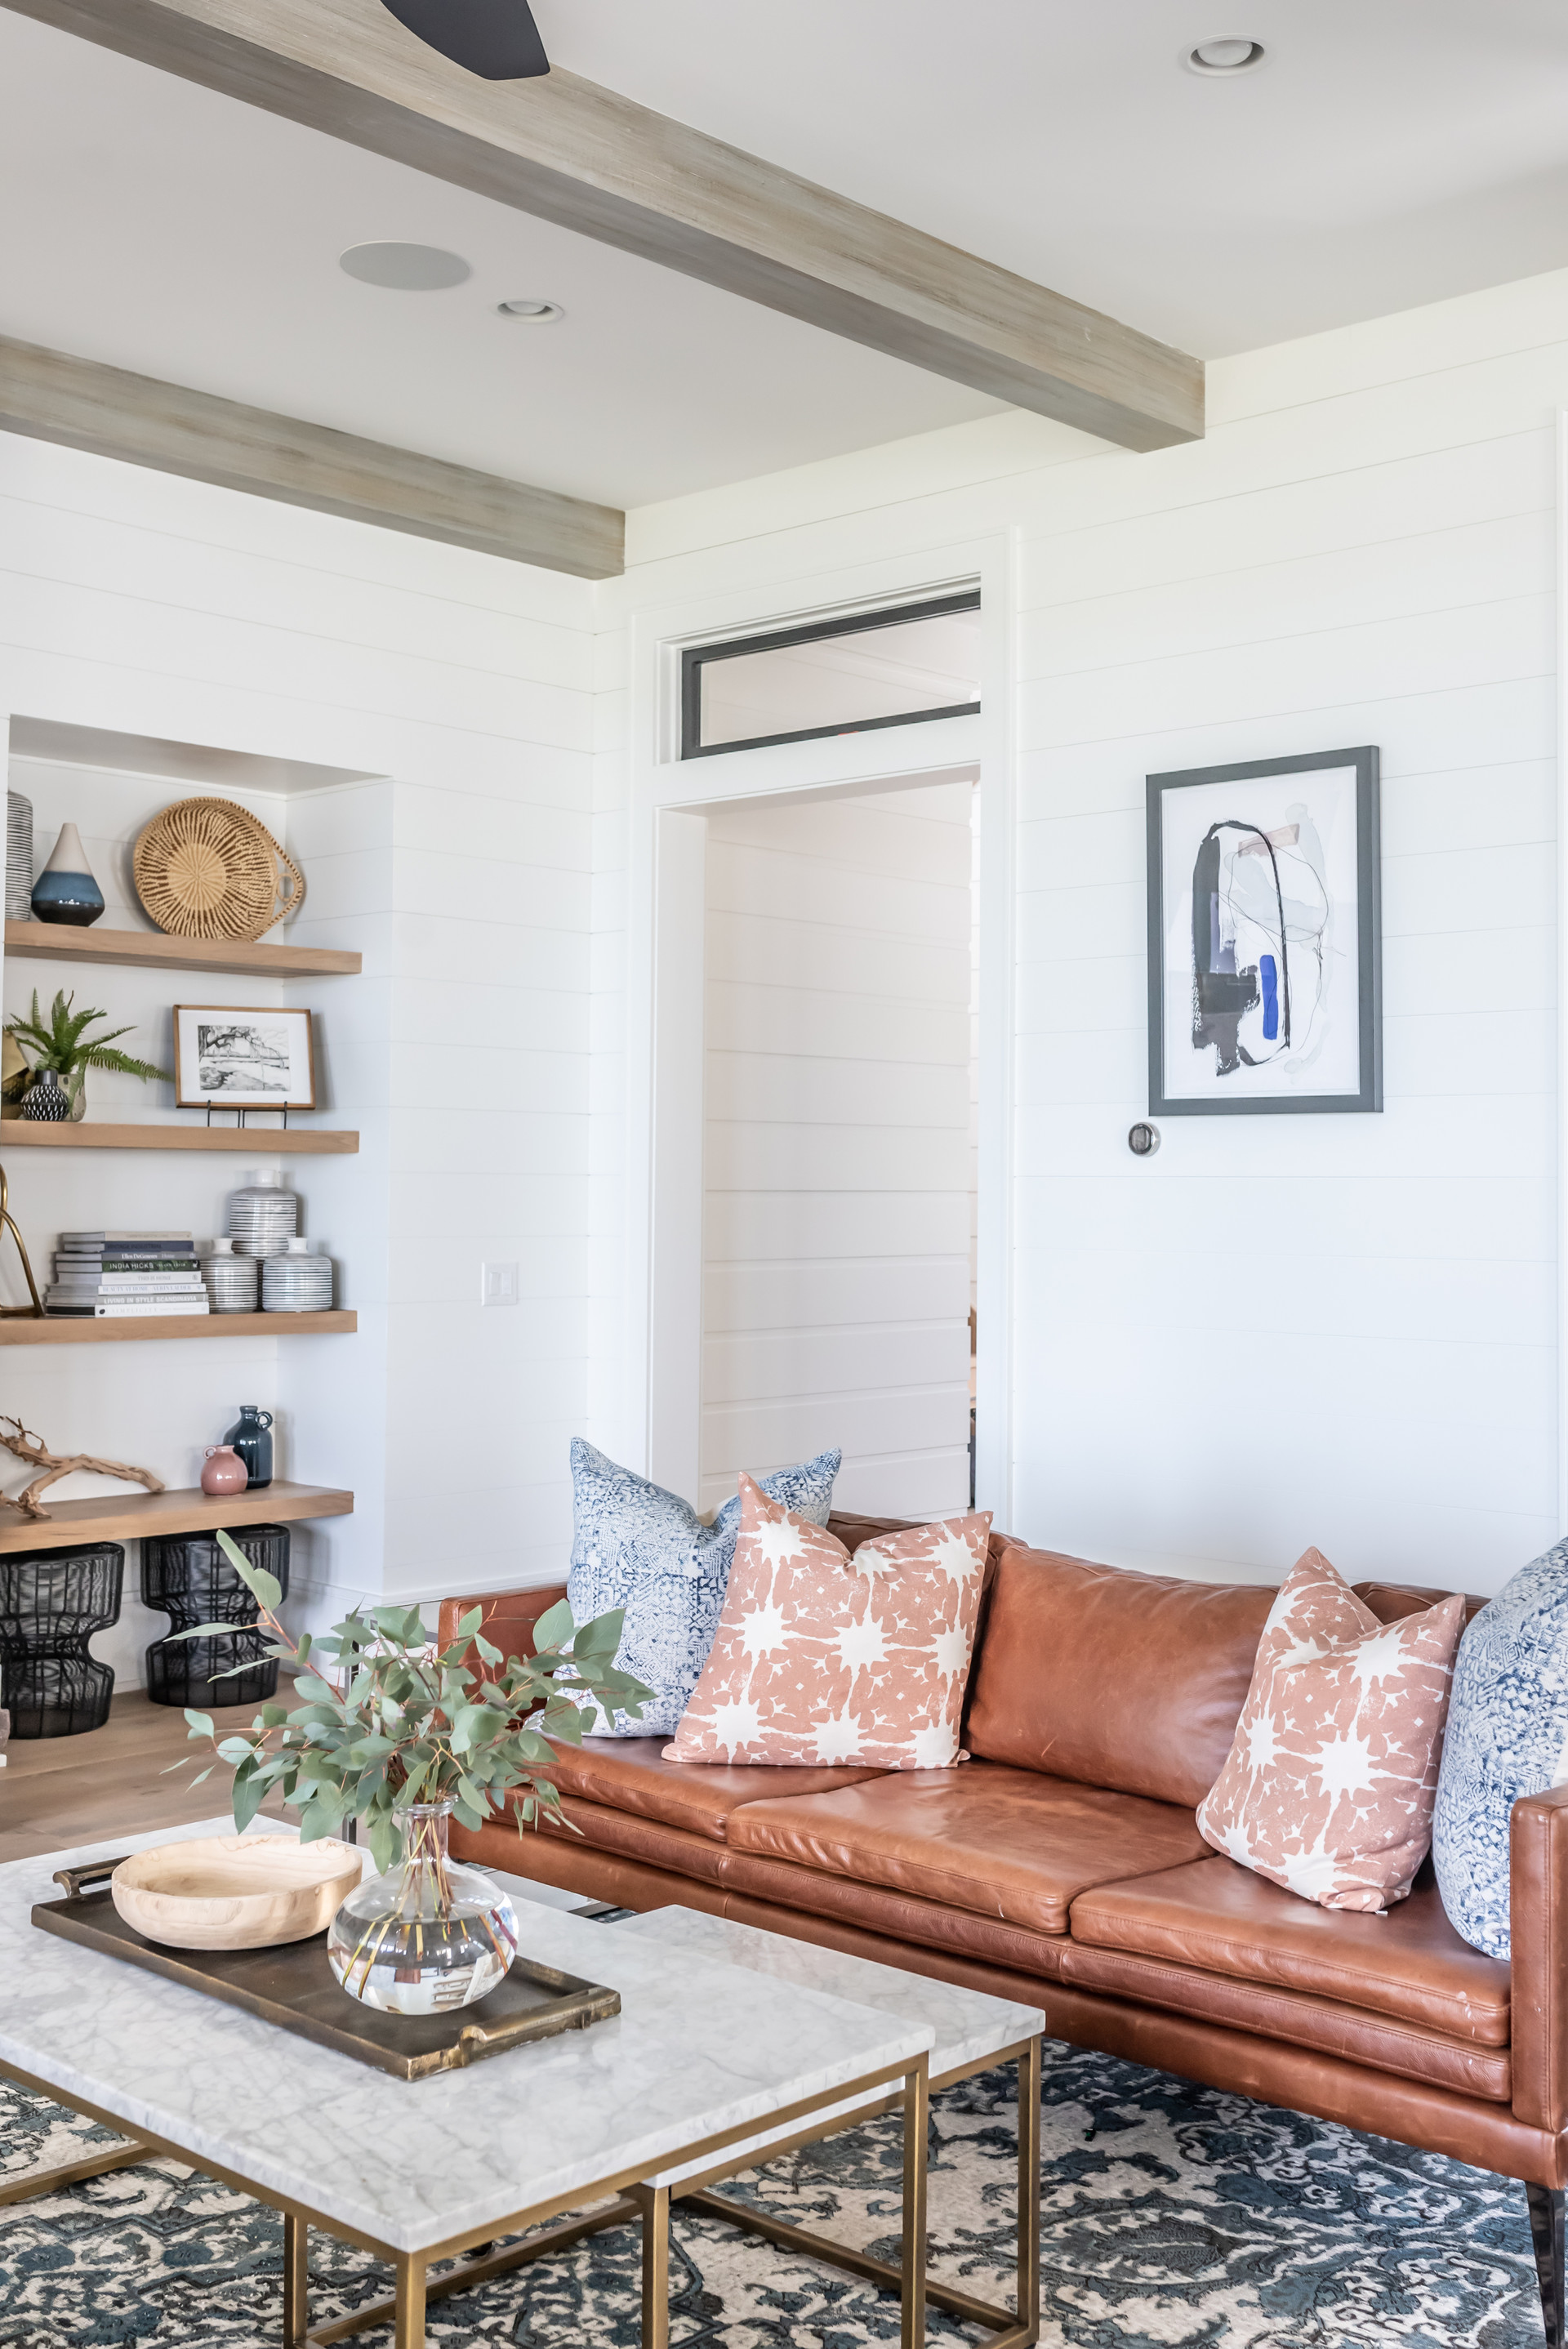 ADC-May1-2019-Living-Room-10.jpg